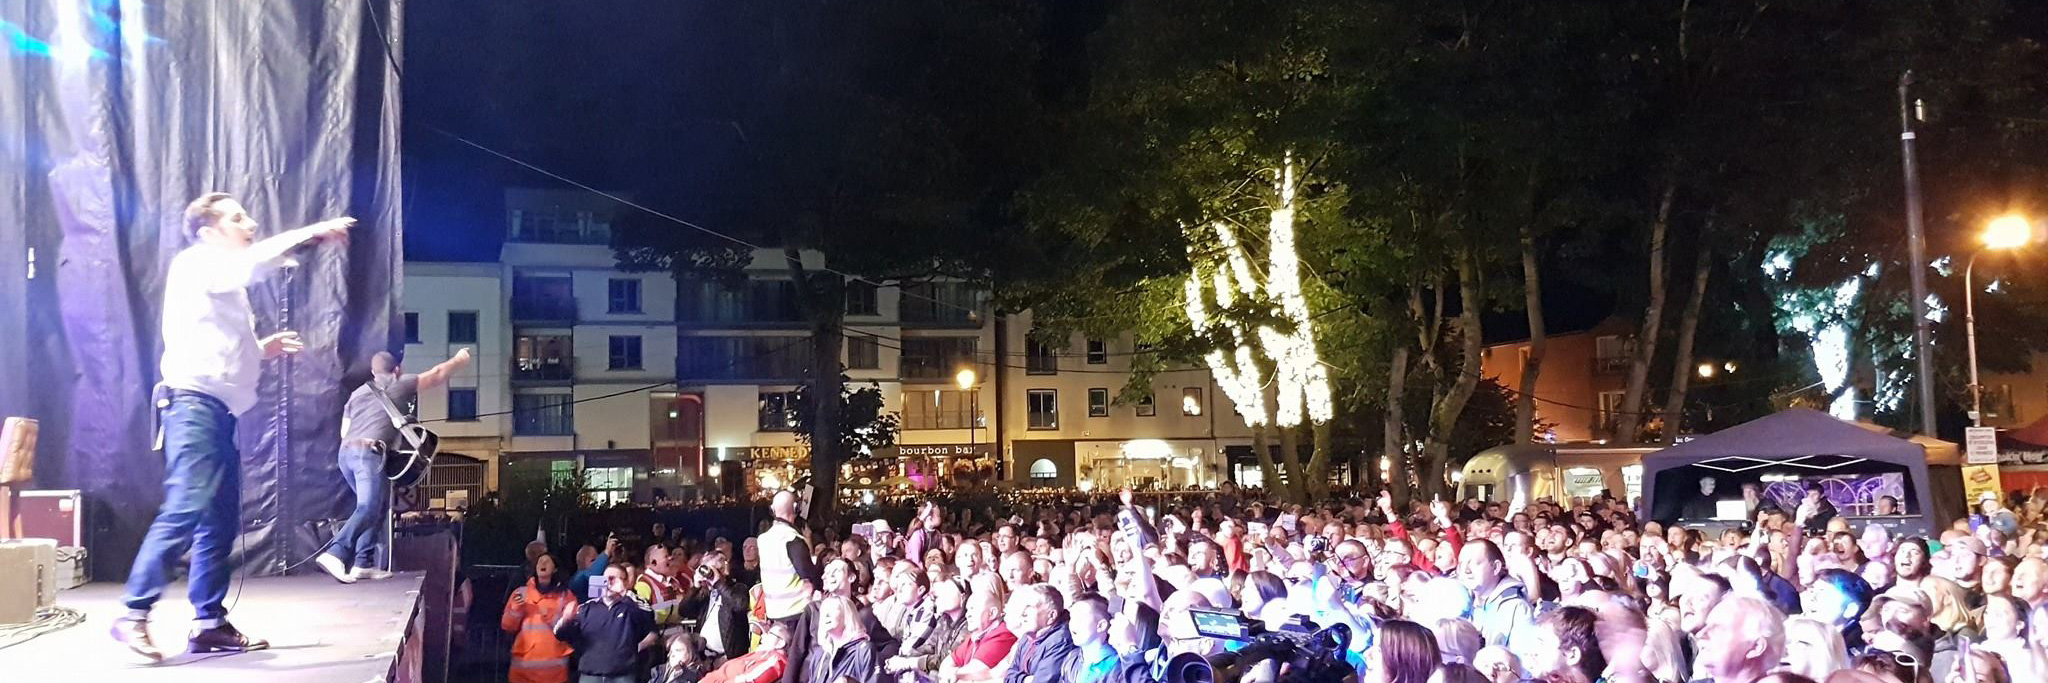 Four-day Sligo Summer Festival is going from strength to strength